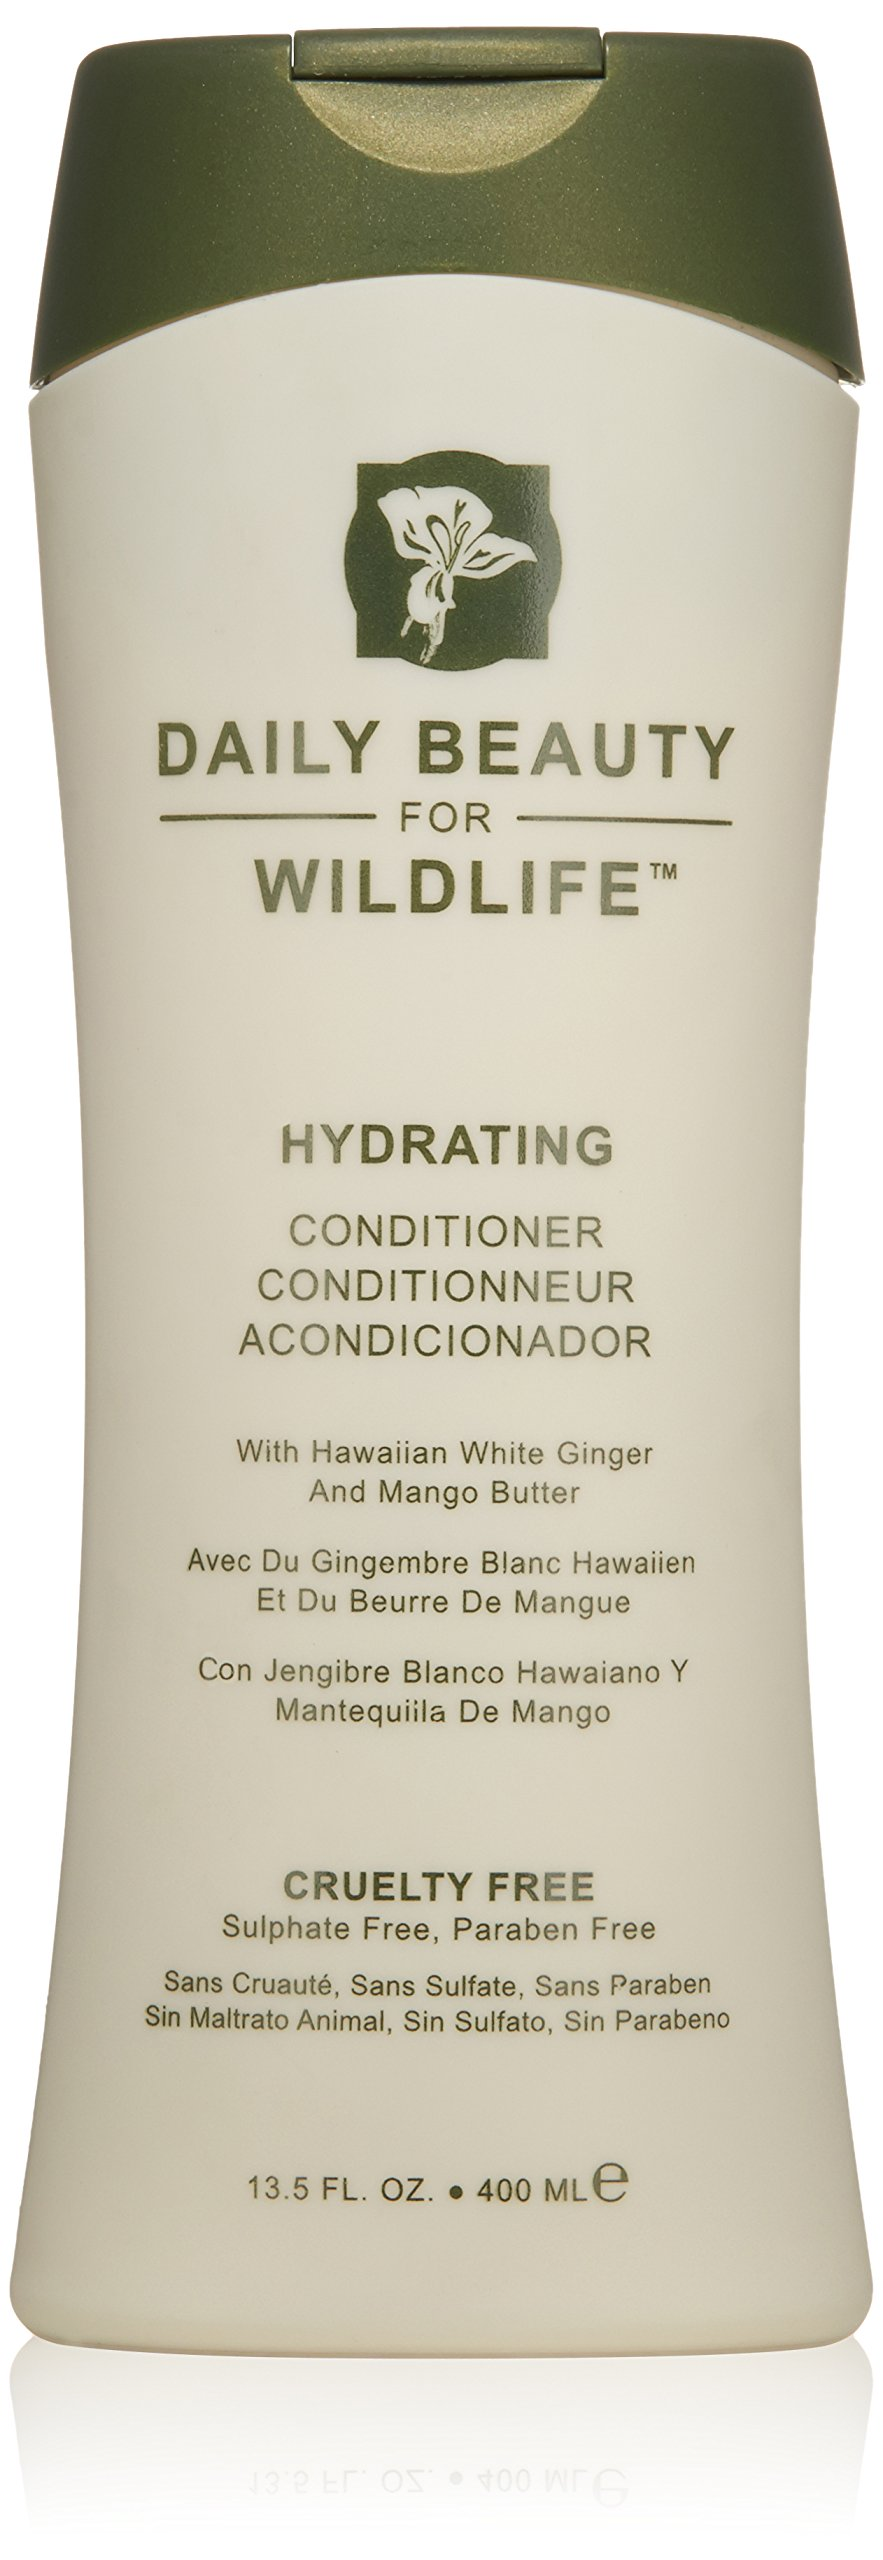 FHI Heat Daily Beauty for Wildlife Hydrating Conditioner